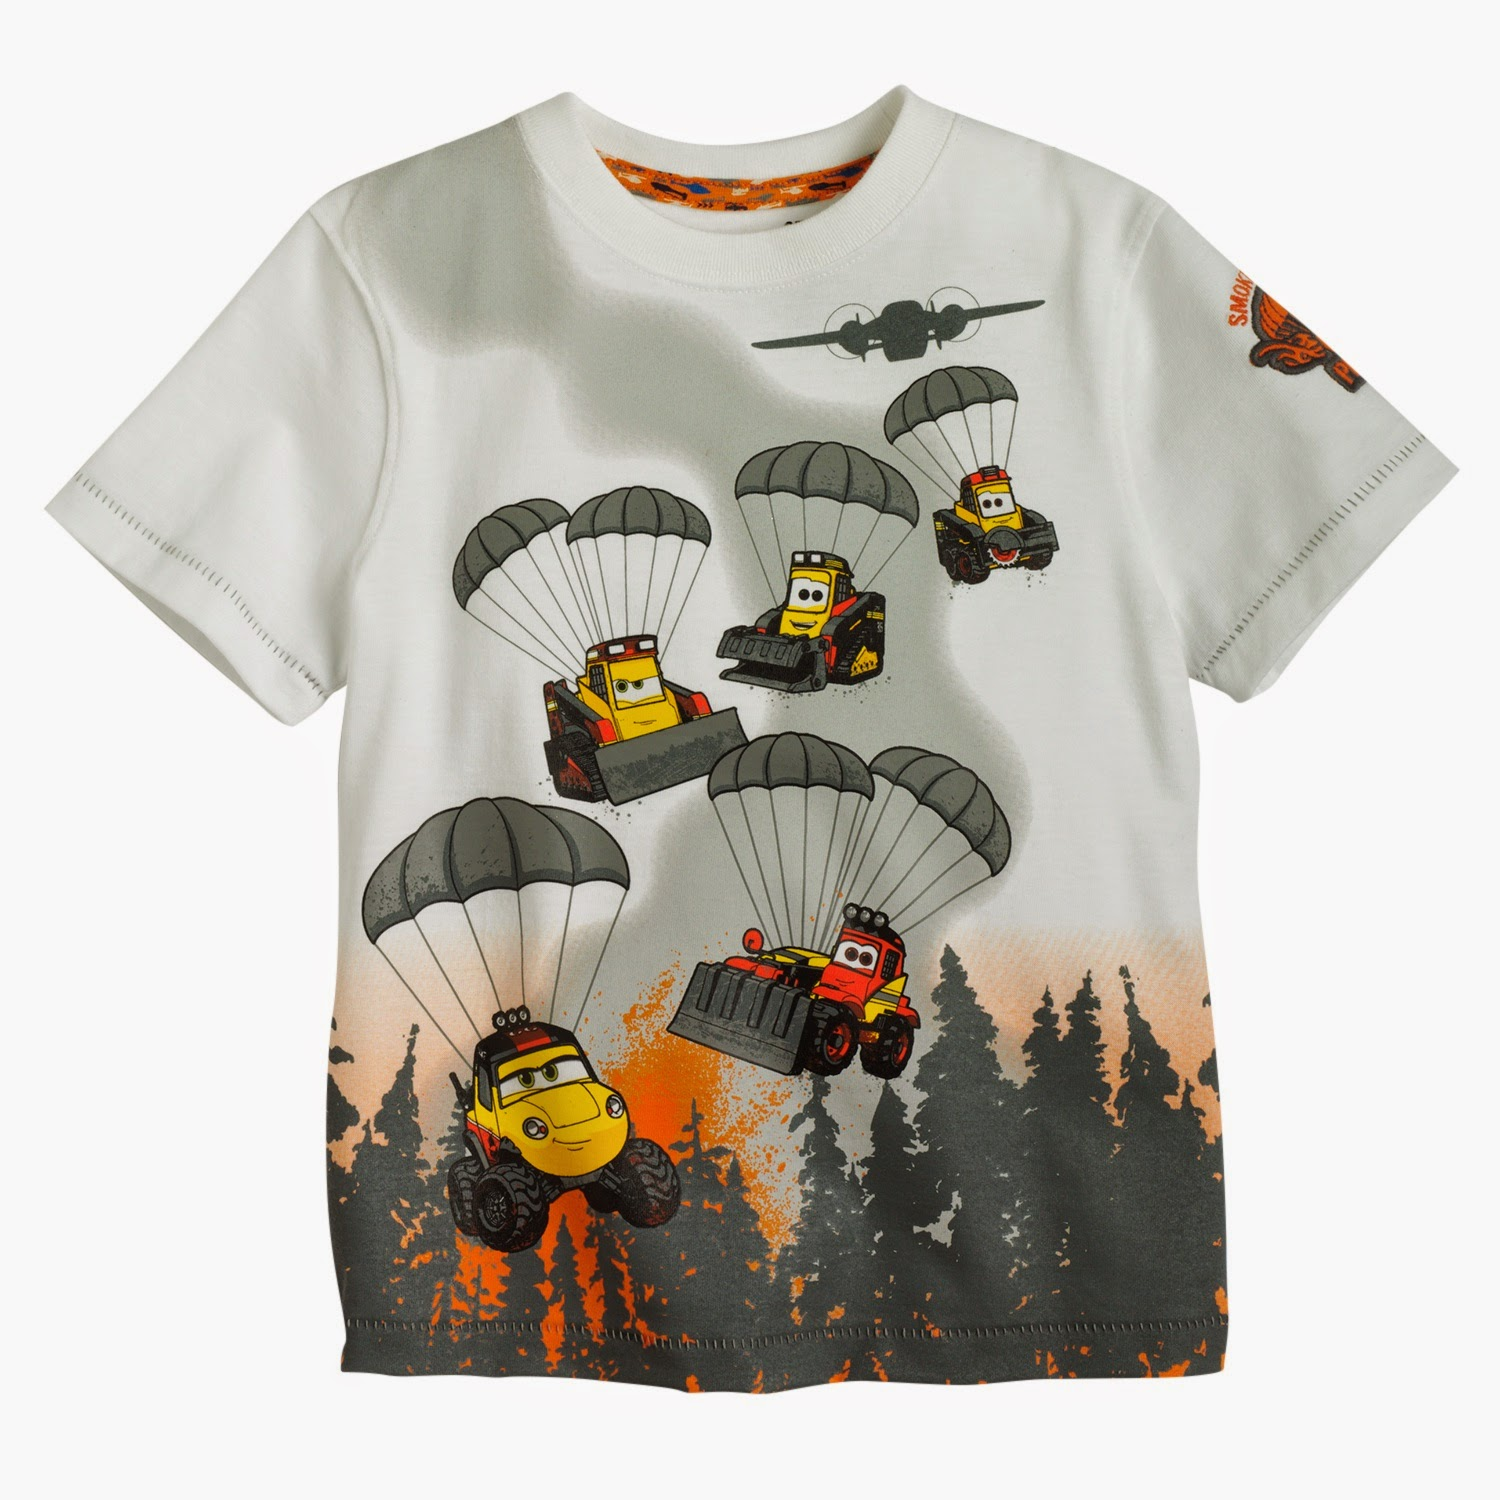 Limited Edition Disney Jumping Beans #FireAndRescue Smokejumper Parachute Tee at Kohl's | www.3Garnets2Sapphires.com #MagicAtPlay